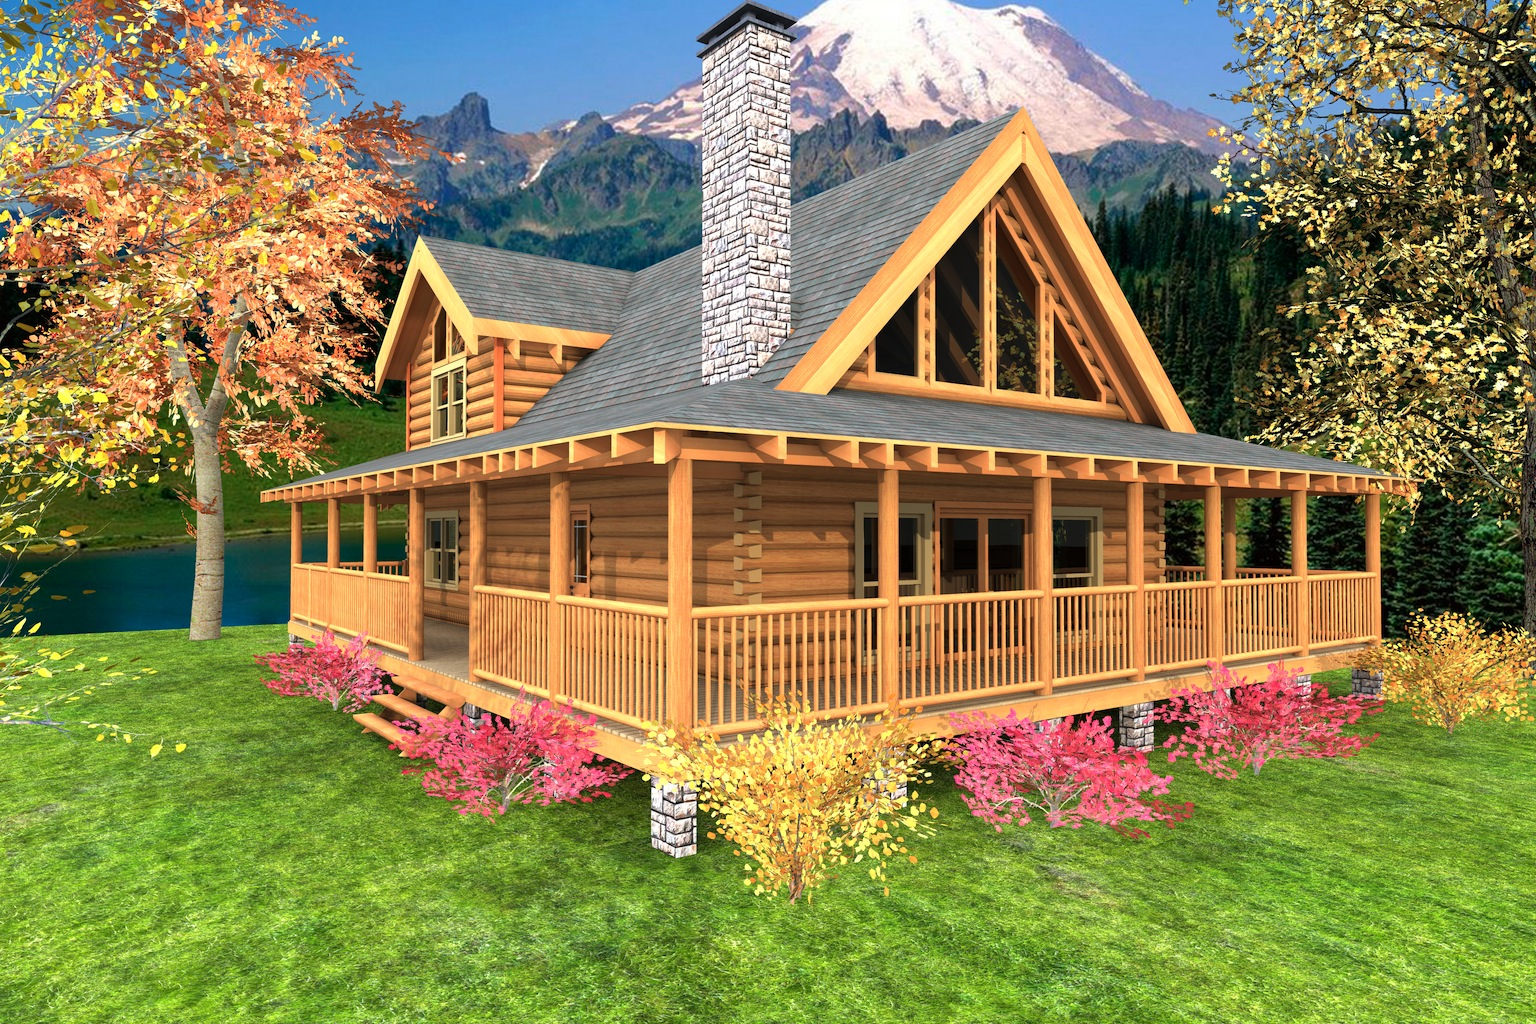 Mountain crest log home custom timber log homes for Unique log homes